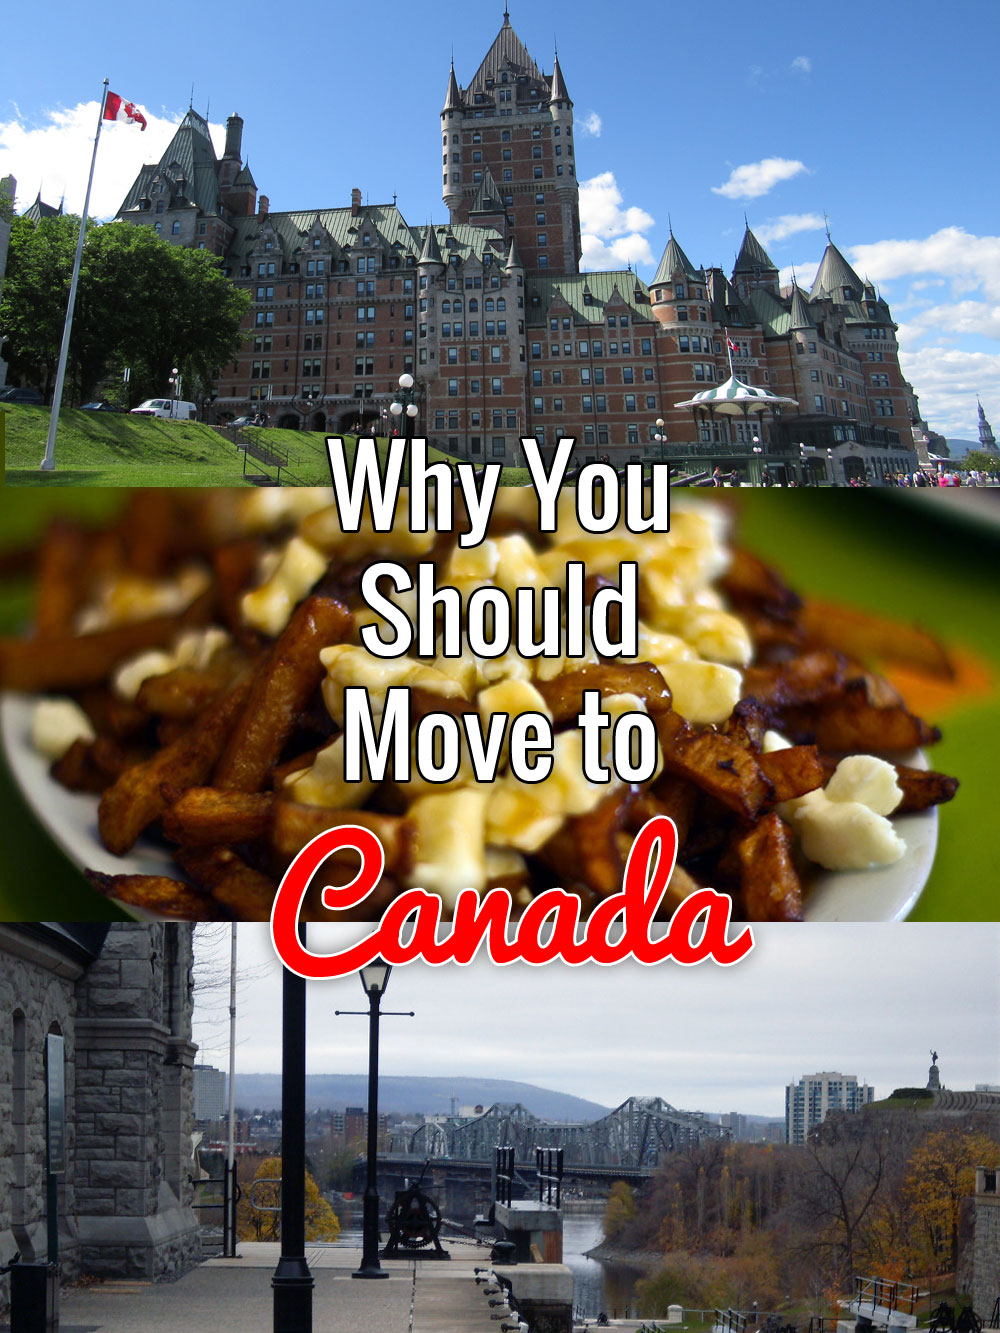 Why You Should Move to Canada